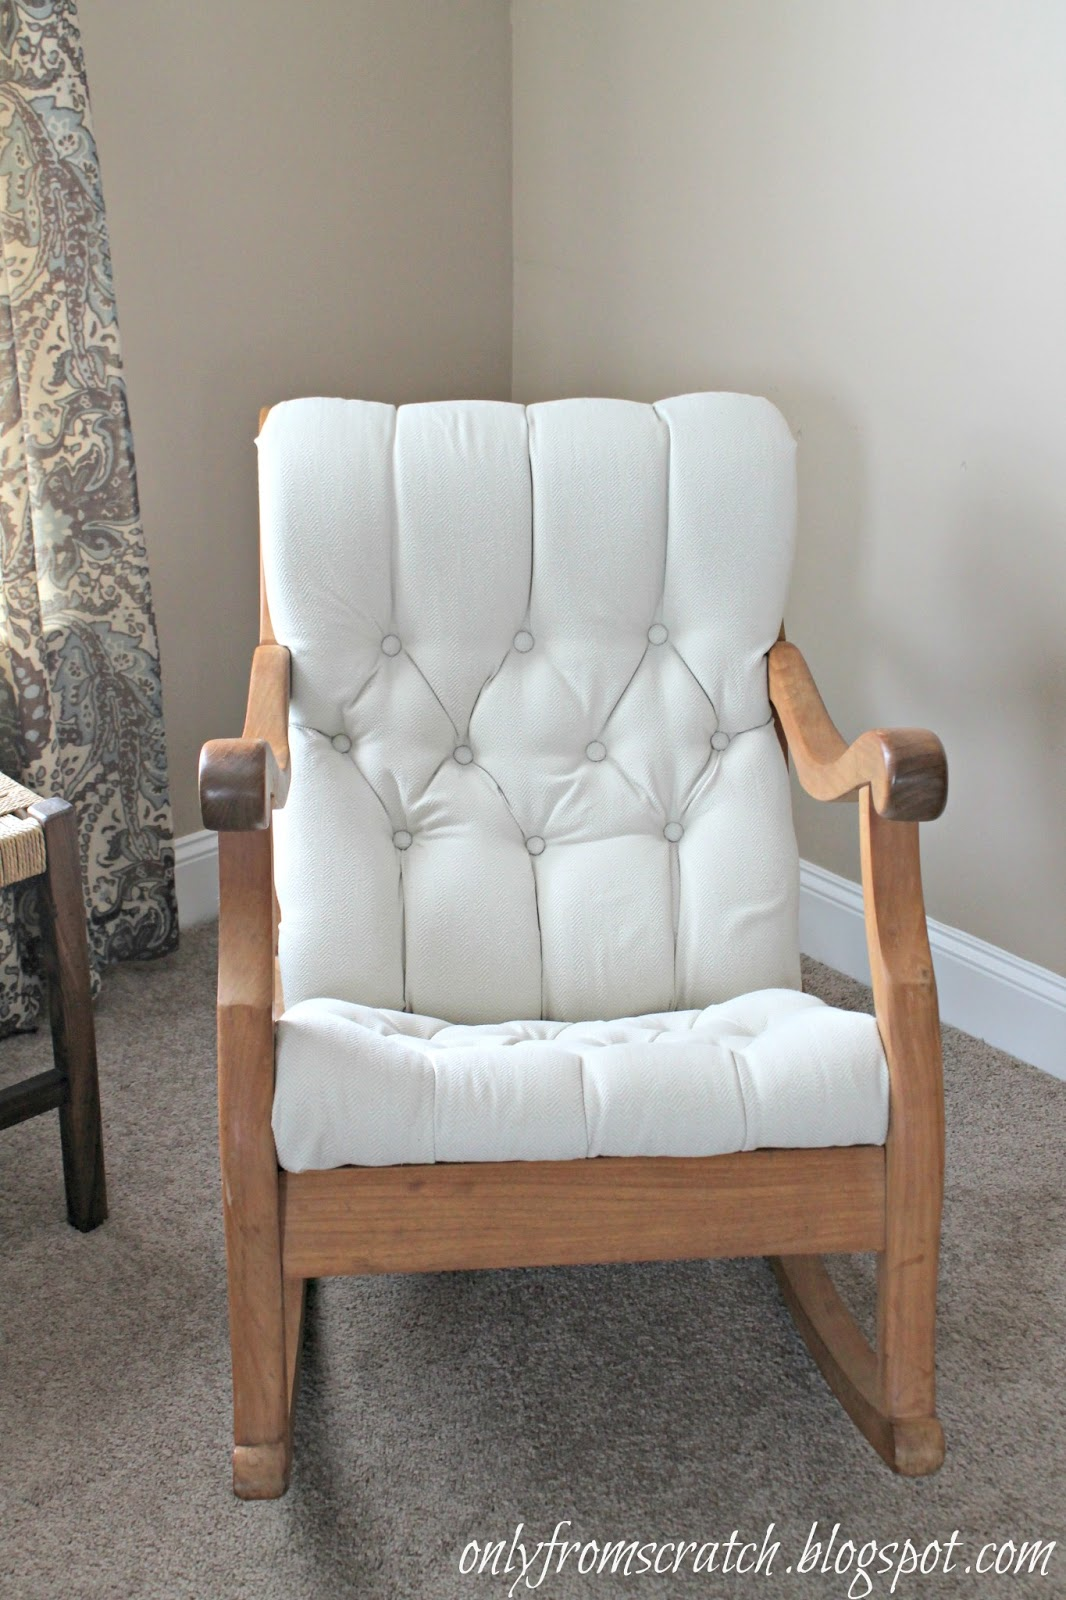 Tufted Rocking Chair Re do. Only From Scratch  Tufted Rocking Chair Re do